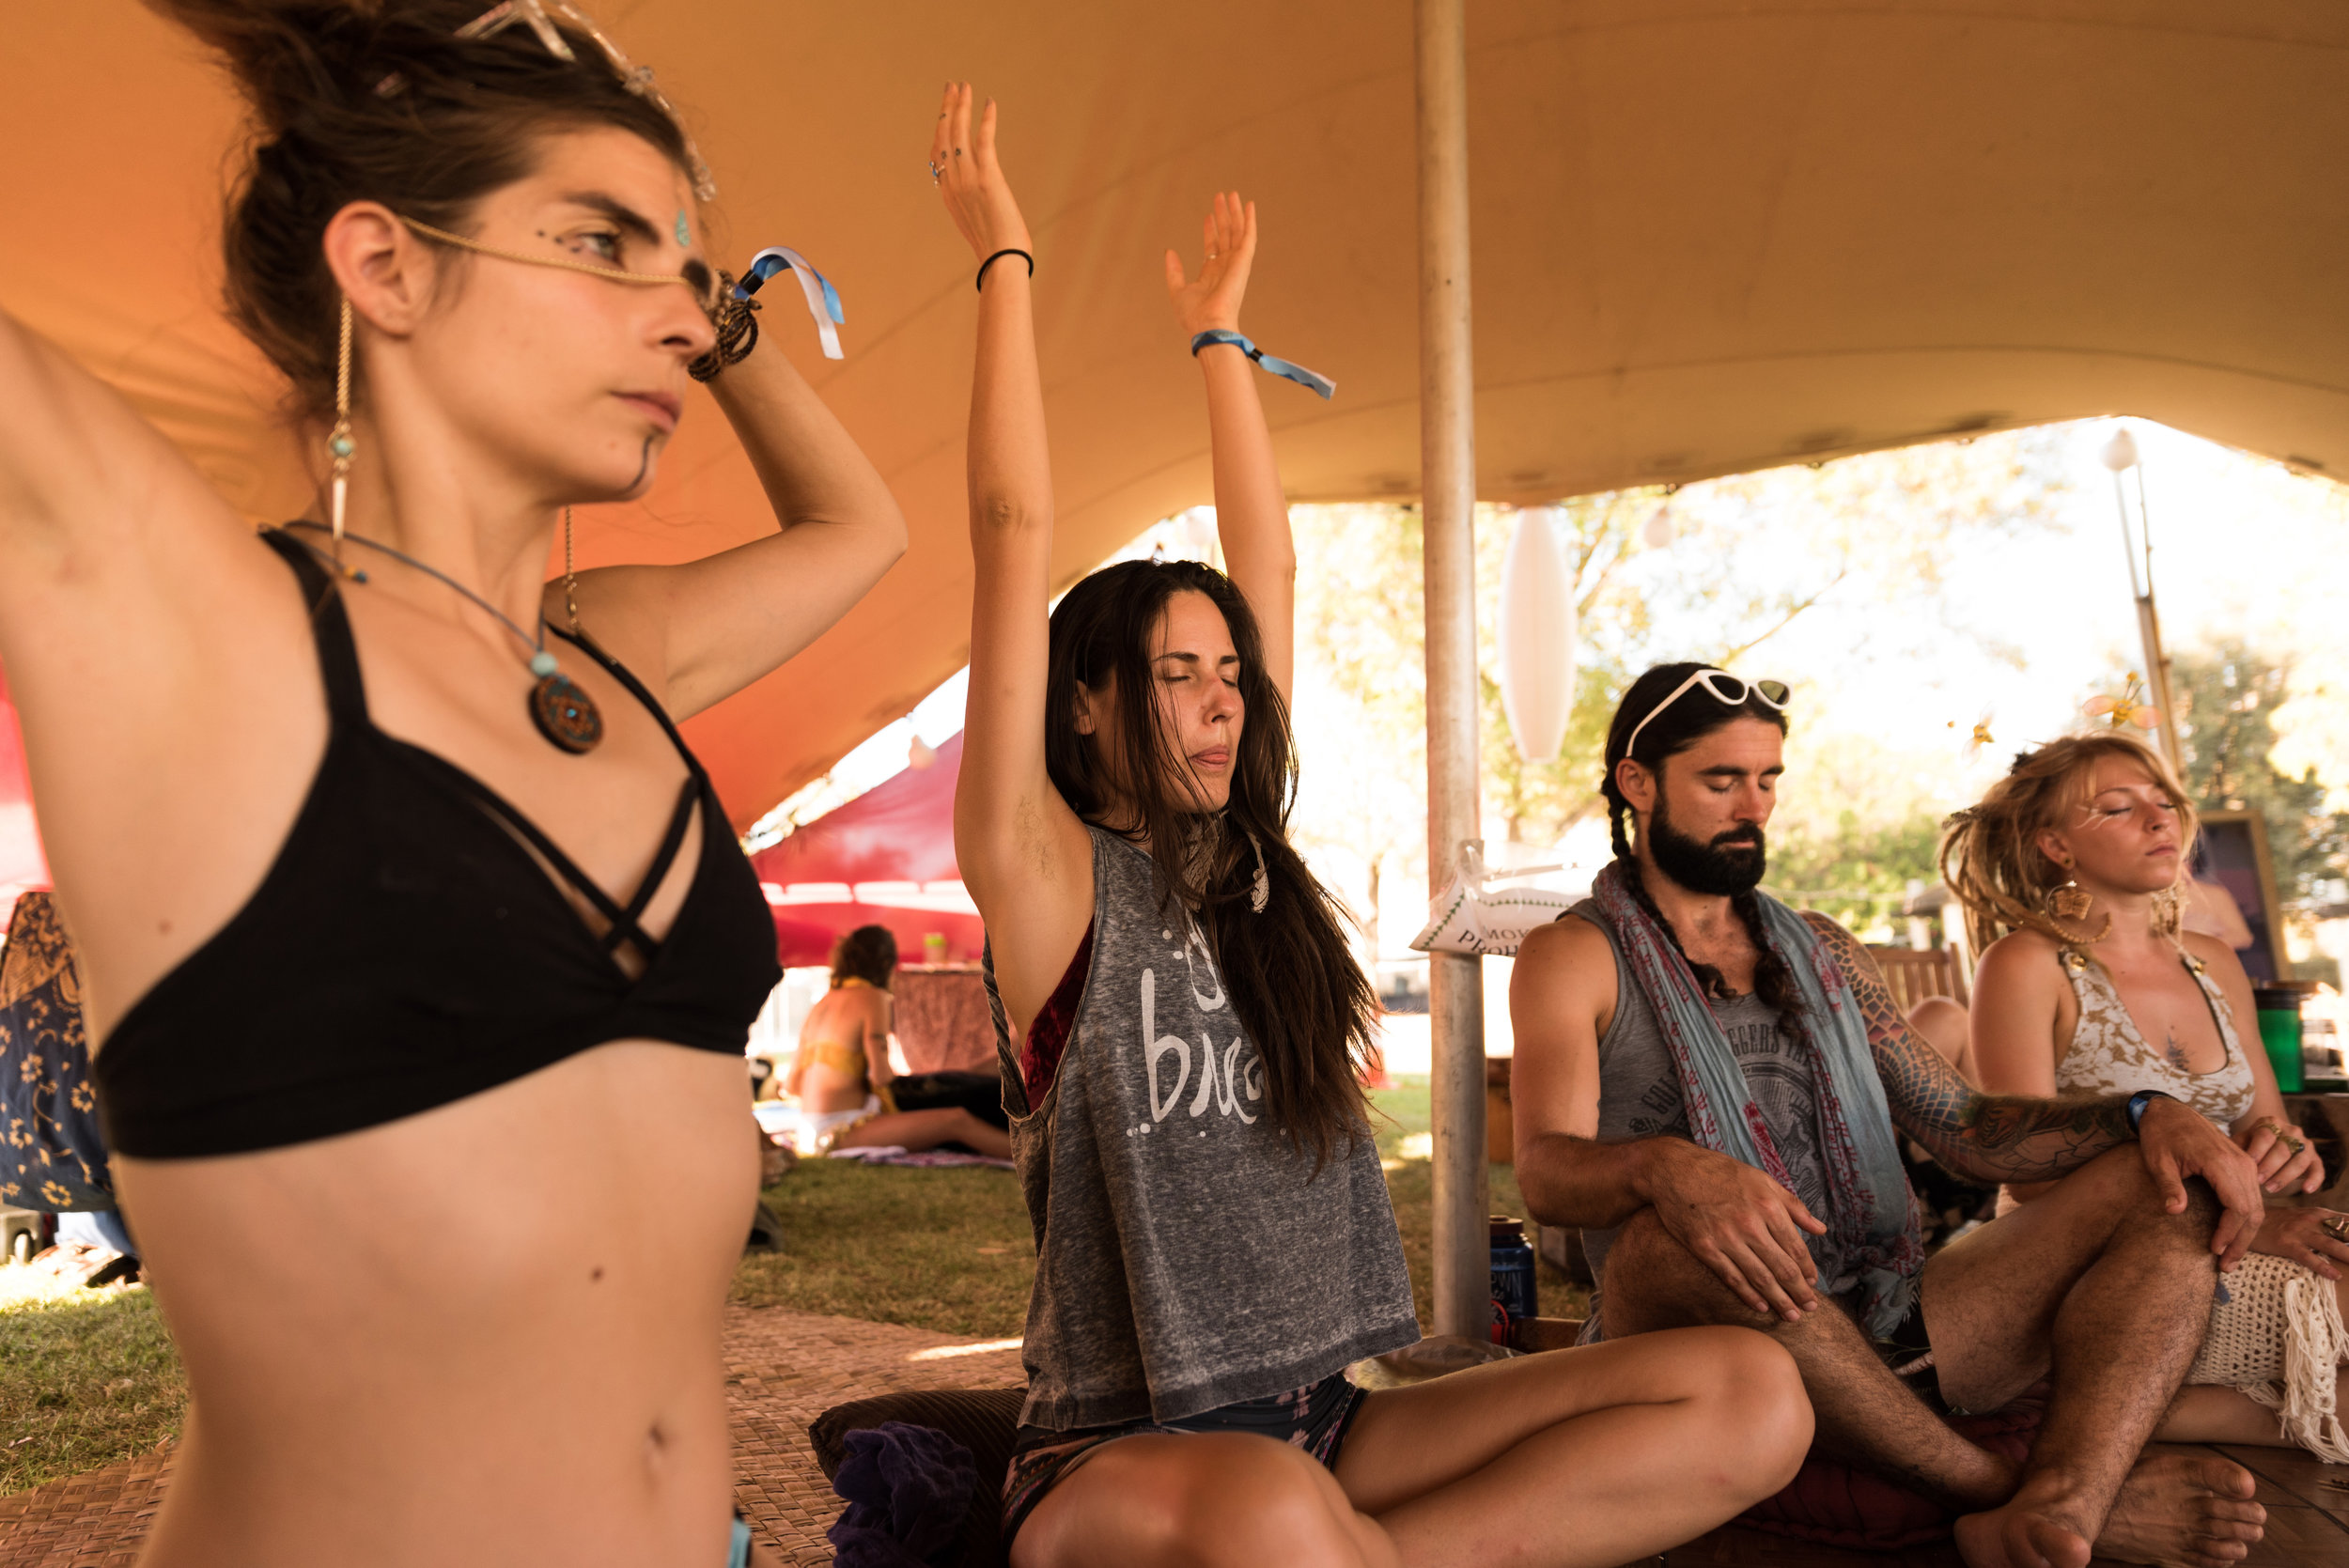 FESTIVAL WORKSHOPS - We're all in this together. We're here to learn and to grow with each other. Talented individuals help guide in yoga, dance, meditation and more during the weekend.